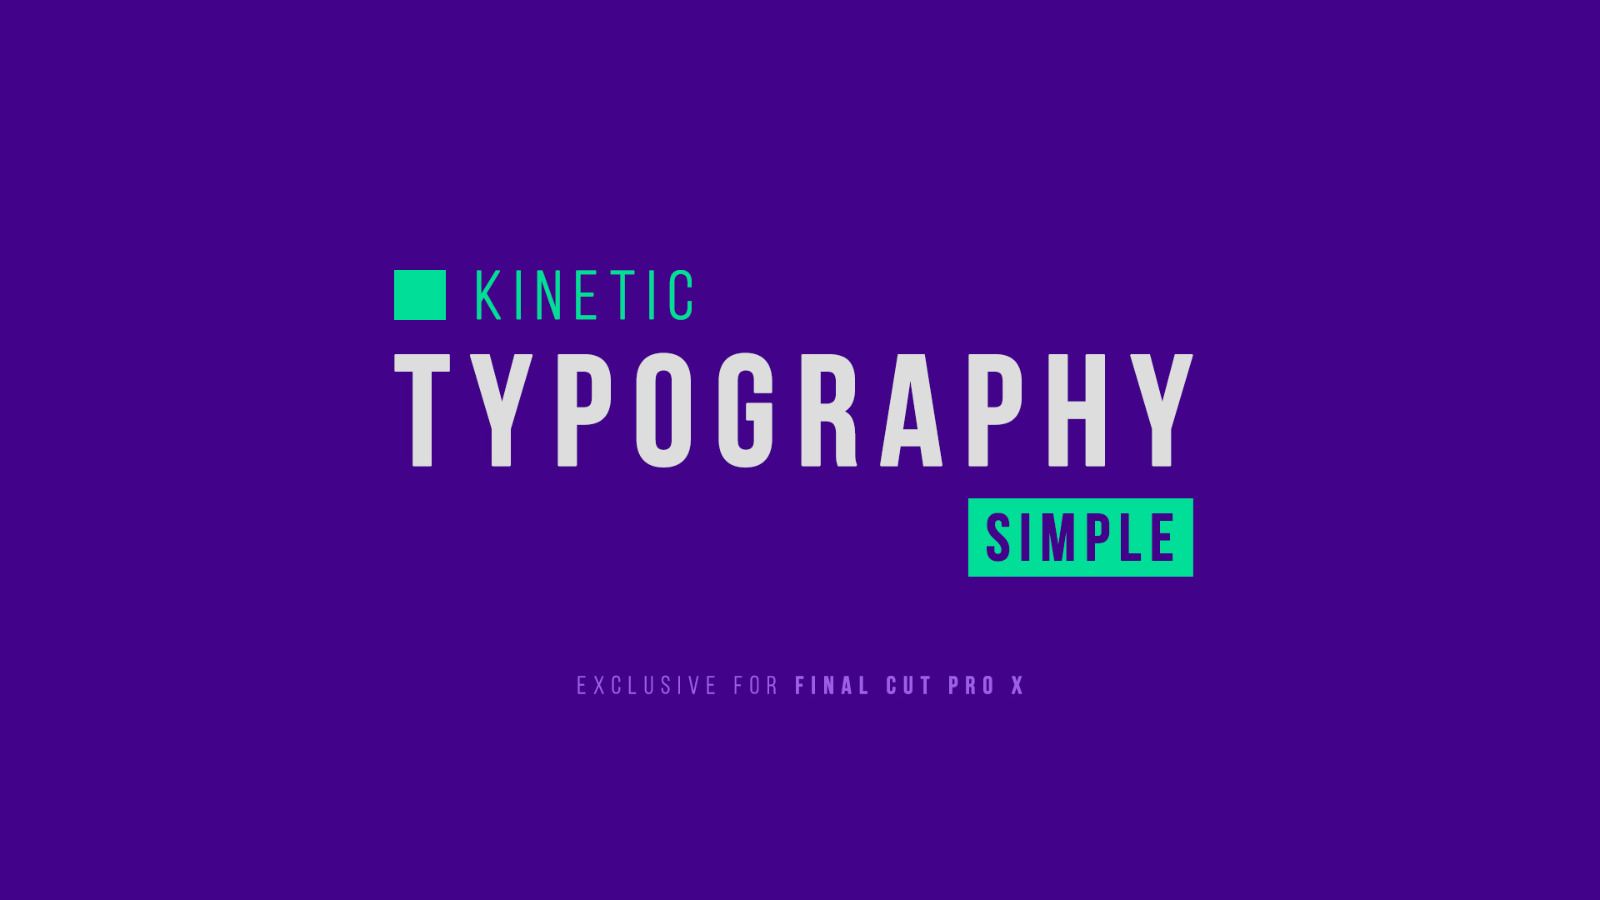 30 Simple Kinetic Typography